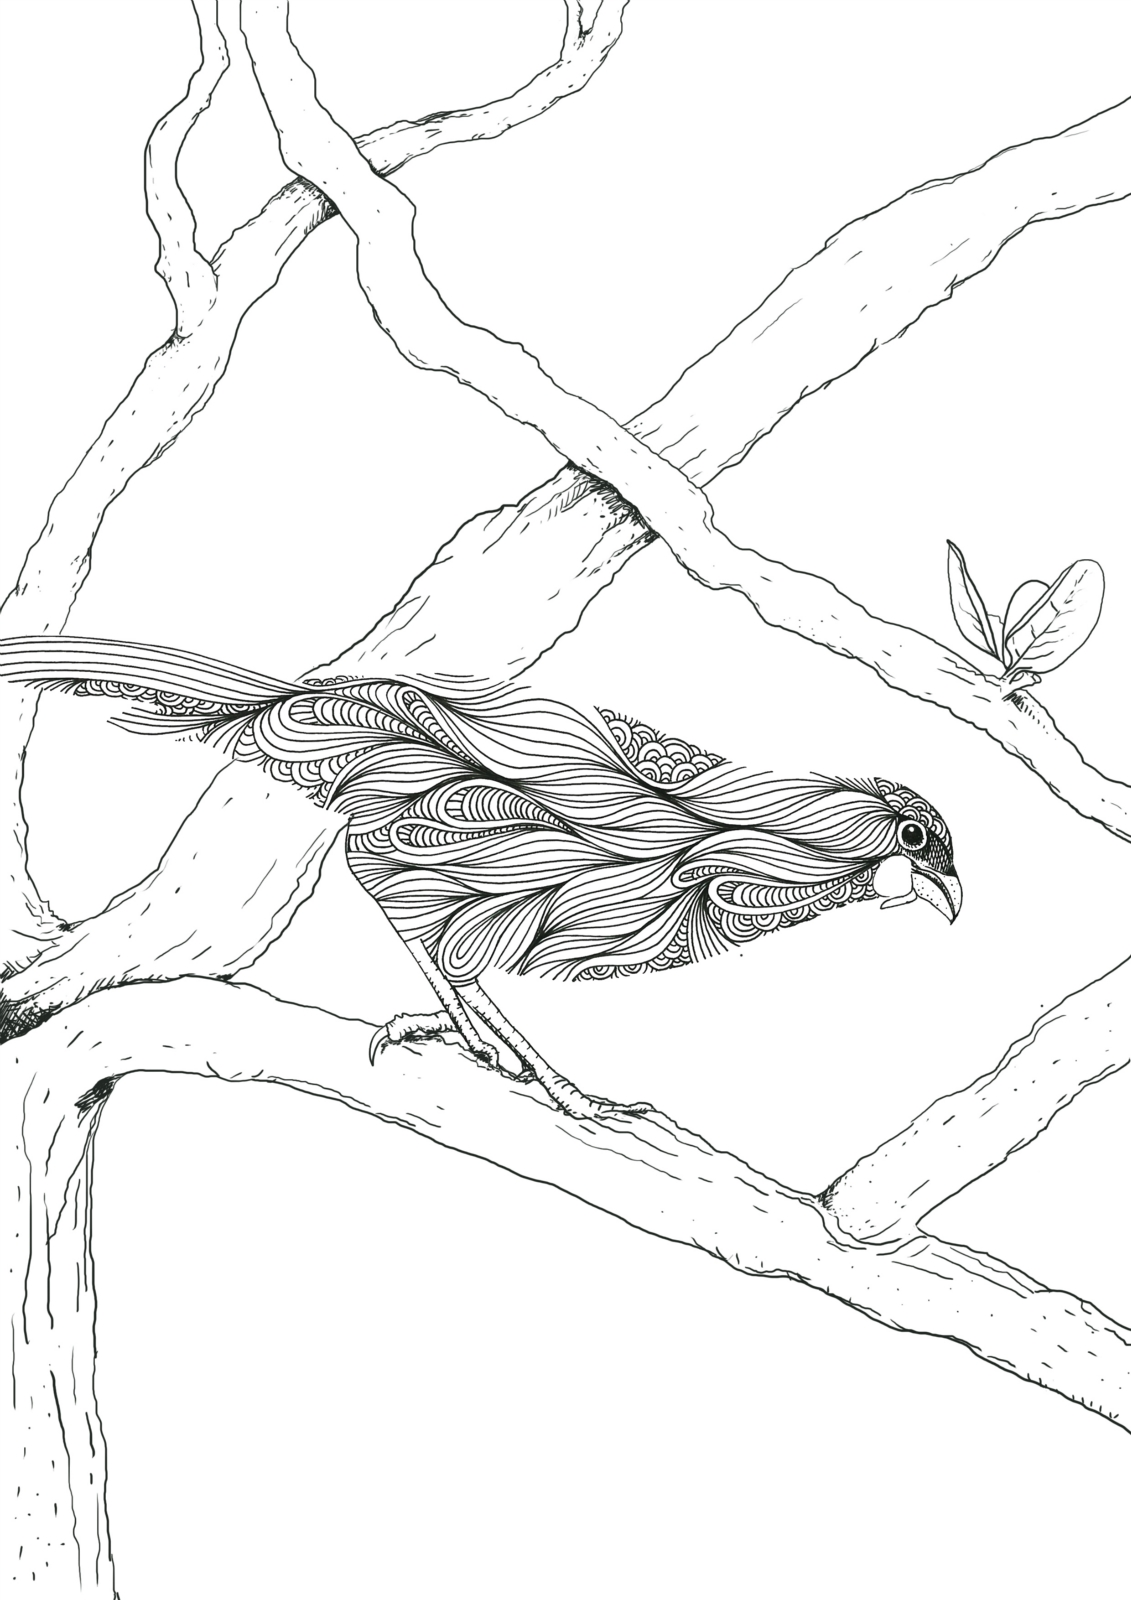 Colouring Pages For Adults Nz : Nz native birds colouring book felt